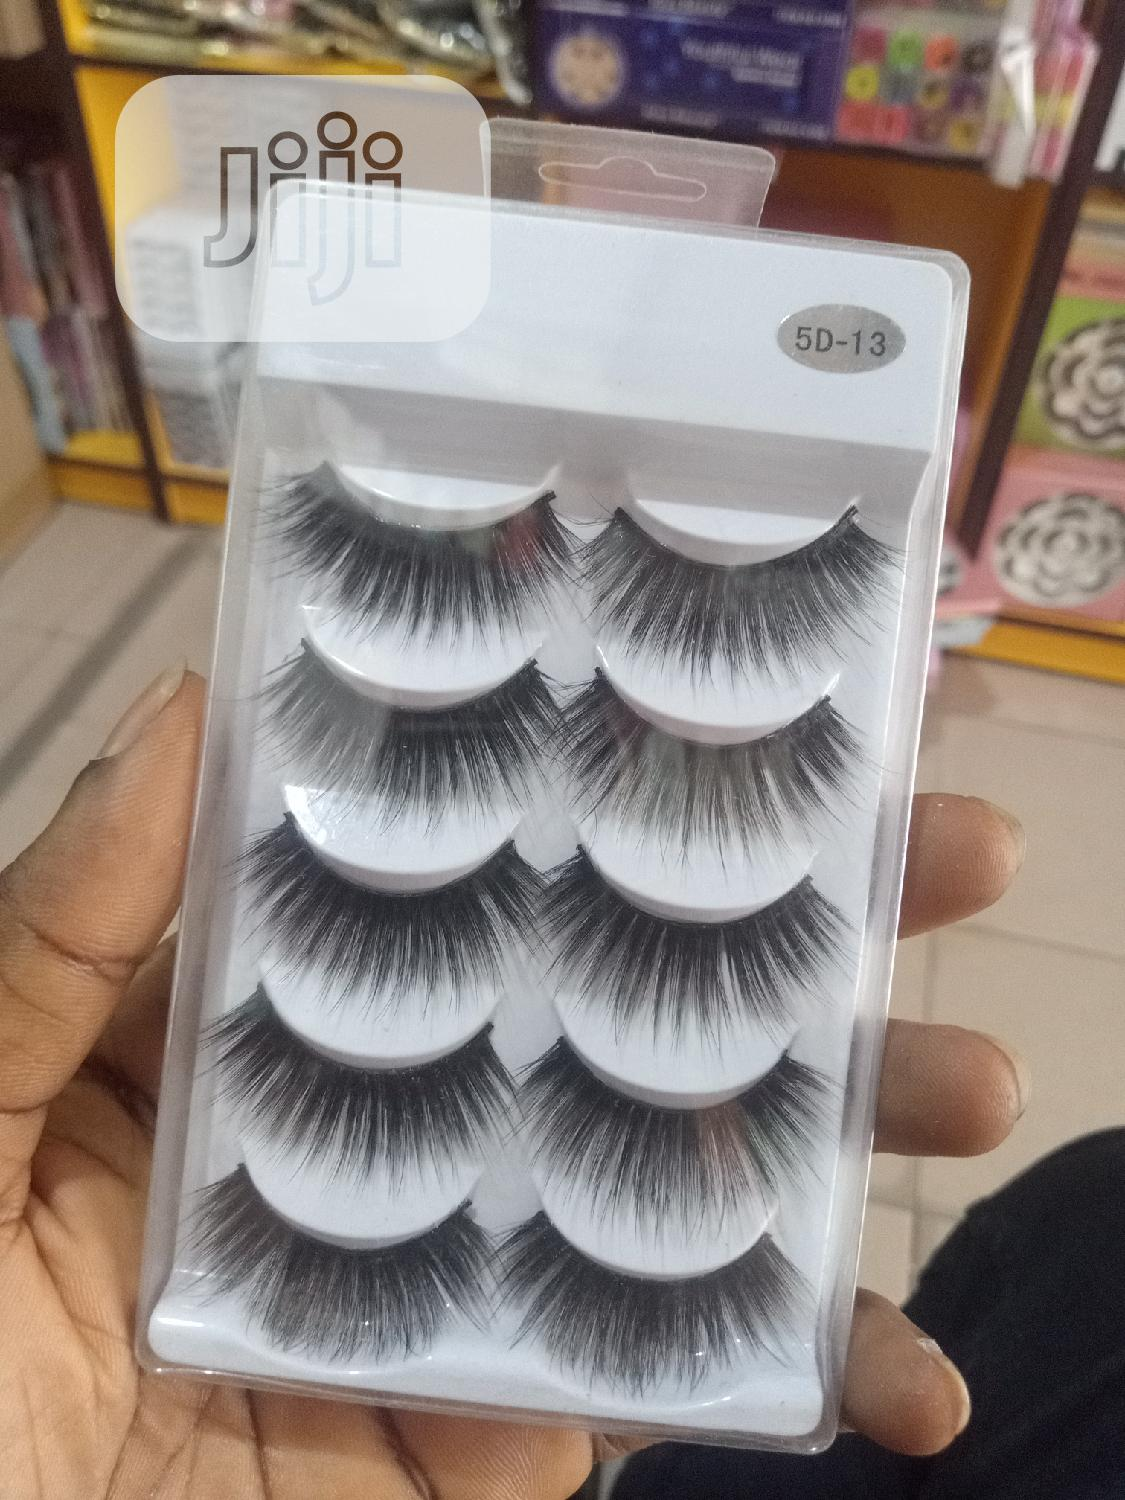 5-in-1 Human Lashes